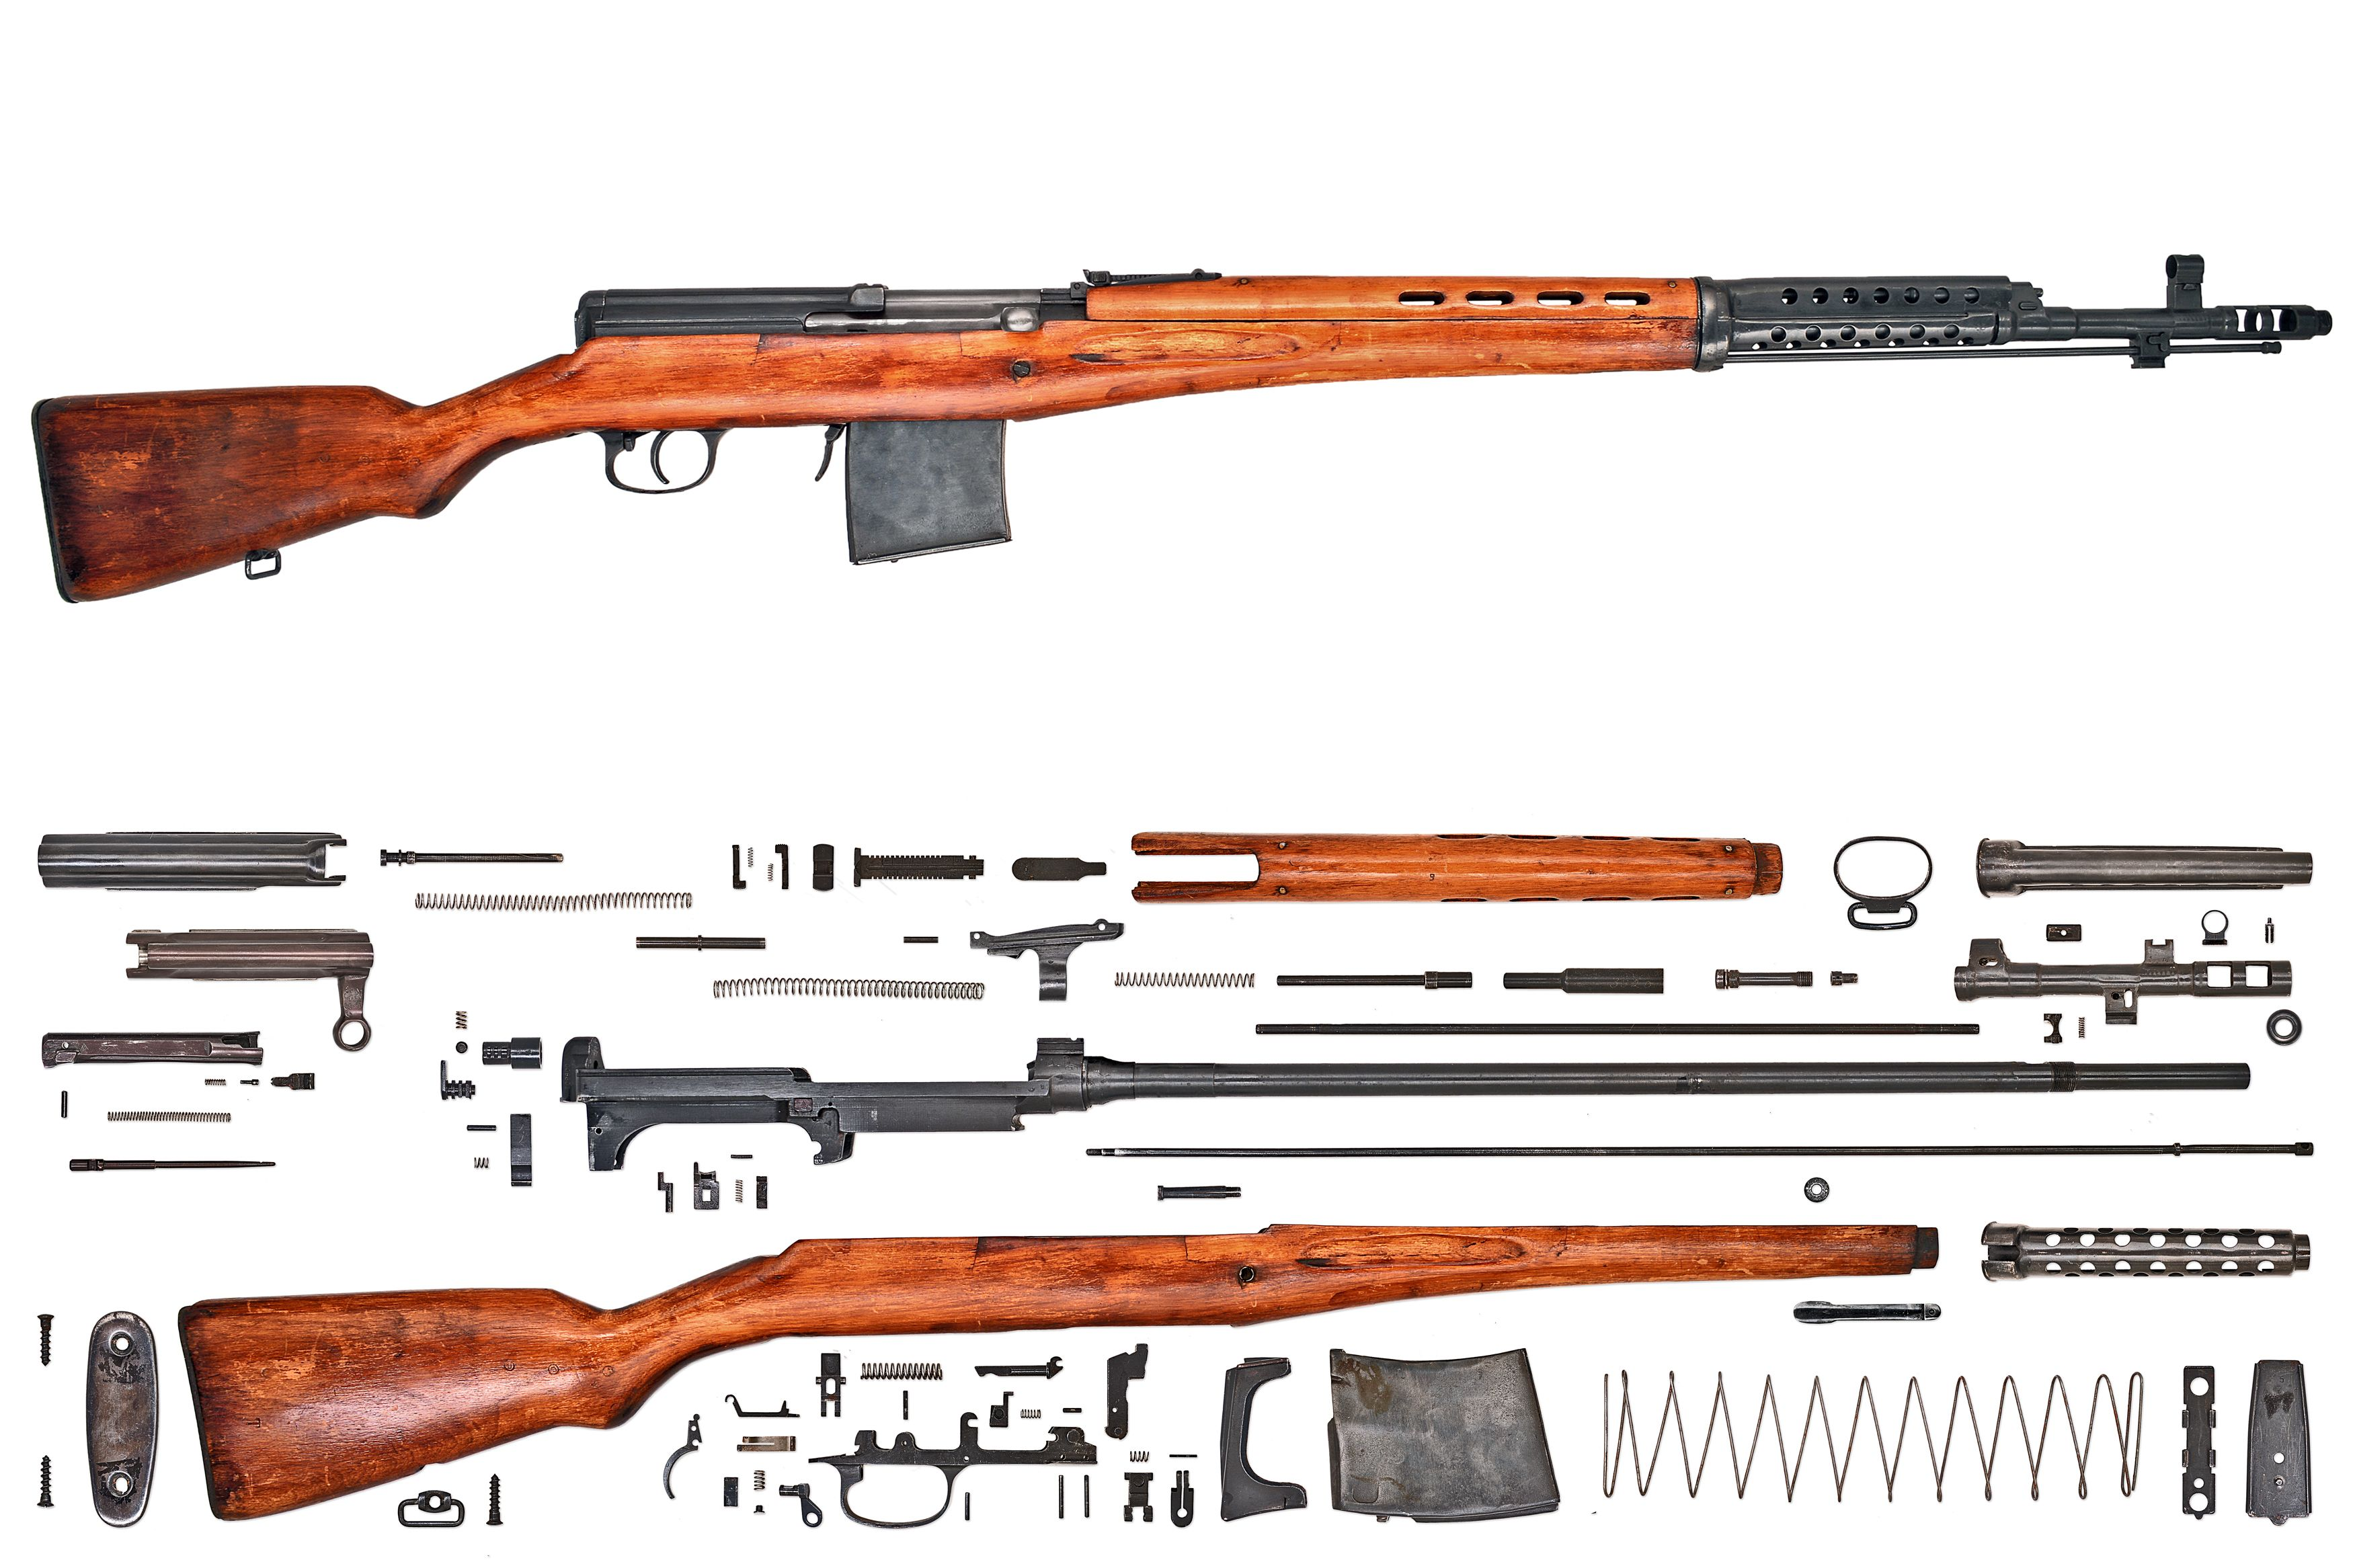 Anatomy-Rifle-USSR-SVT-40.jpg (3500×2333) | Guns... For when they ...